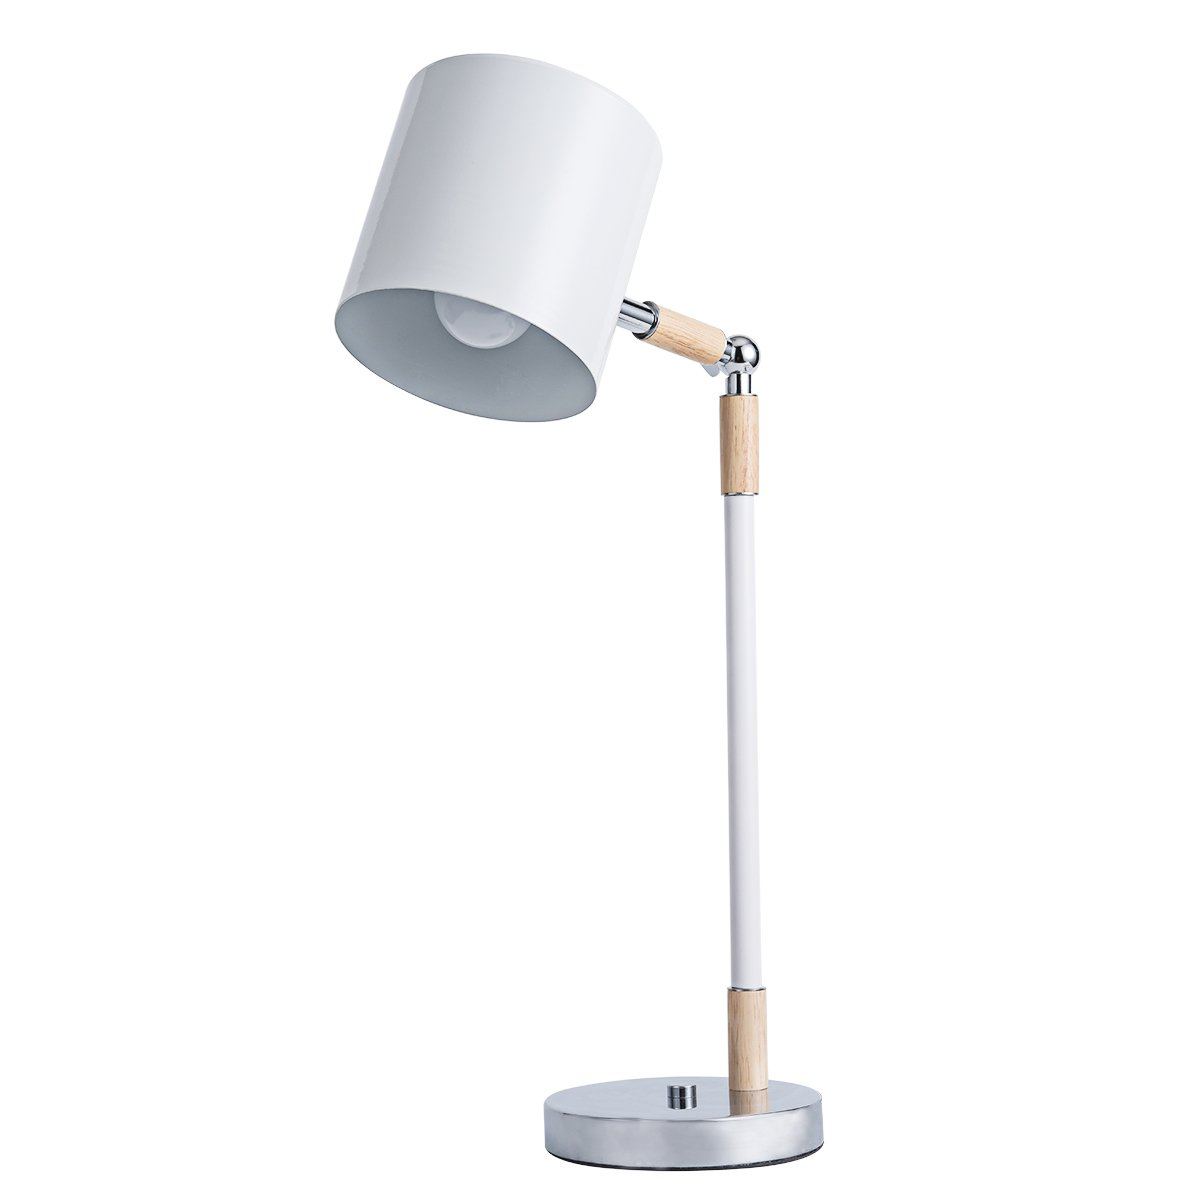 Lai Deng LED Table lamp Adjustable Metal Shade with Bedside Lamps Touch Control Table lamp White